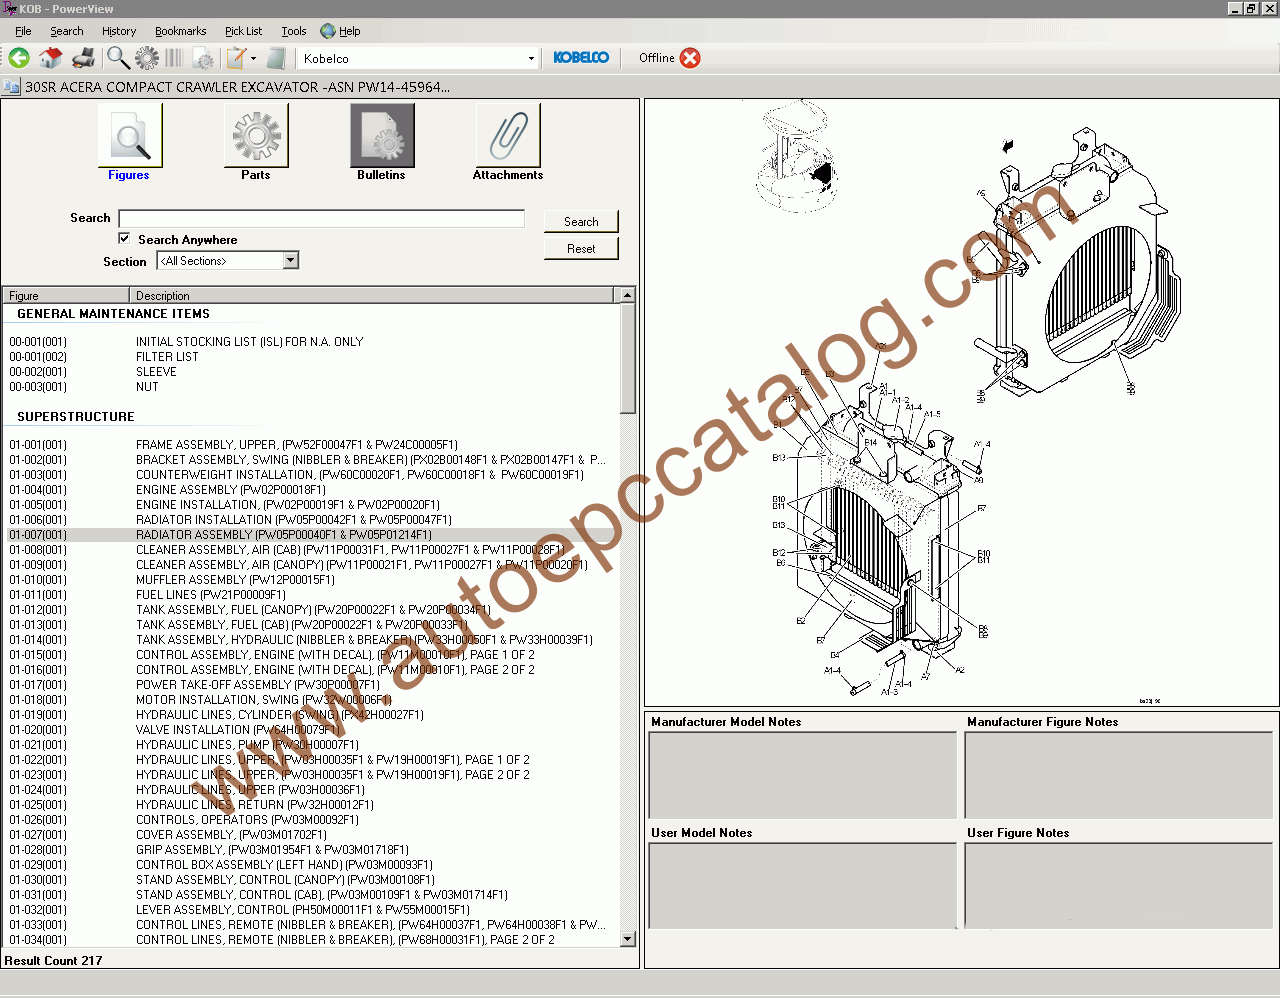 2012 Kobelco Spare Parts Catalog PowerView EPC Download & Installation on volkswagen wiring diagrams, chevrolet wiring diagrams, mustang wiring diagrams, jlg wiring diagrams, kaeser wiring diagrams, kenworth wiring diagrams, mitsubishi wiring diagrams, chrysler wiring diagrams, champion wiring diagrams, cat wiring diagrams, lull wiring diagrams, thomas wiring diagrams, terex wiring diagrams, link belt wiring diagrams, international wiring diagrams, lincoln wiring diagrams, hyundai wiring diagrams, kubota wiring diagrams, new holland wiring diagrams, ingersoll rand wiring diagrams,